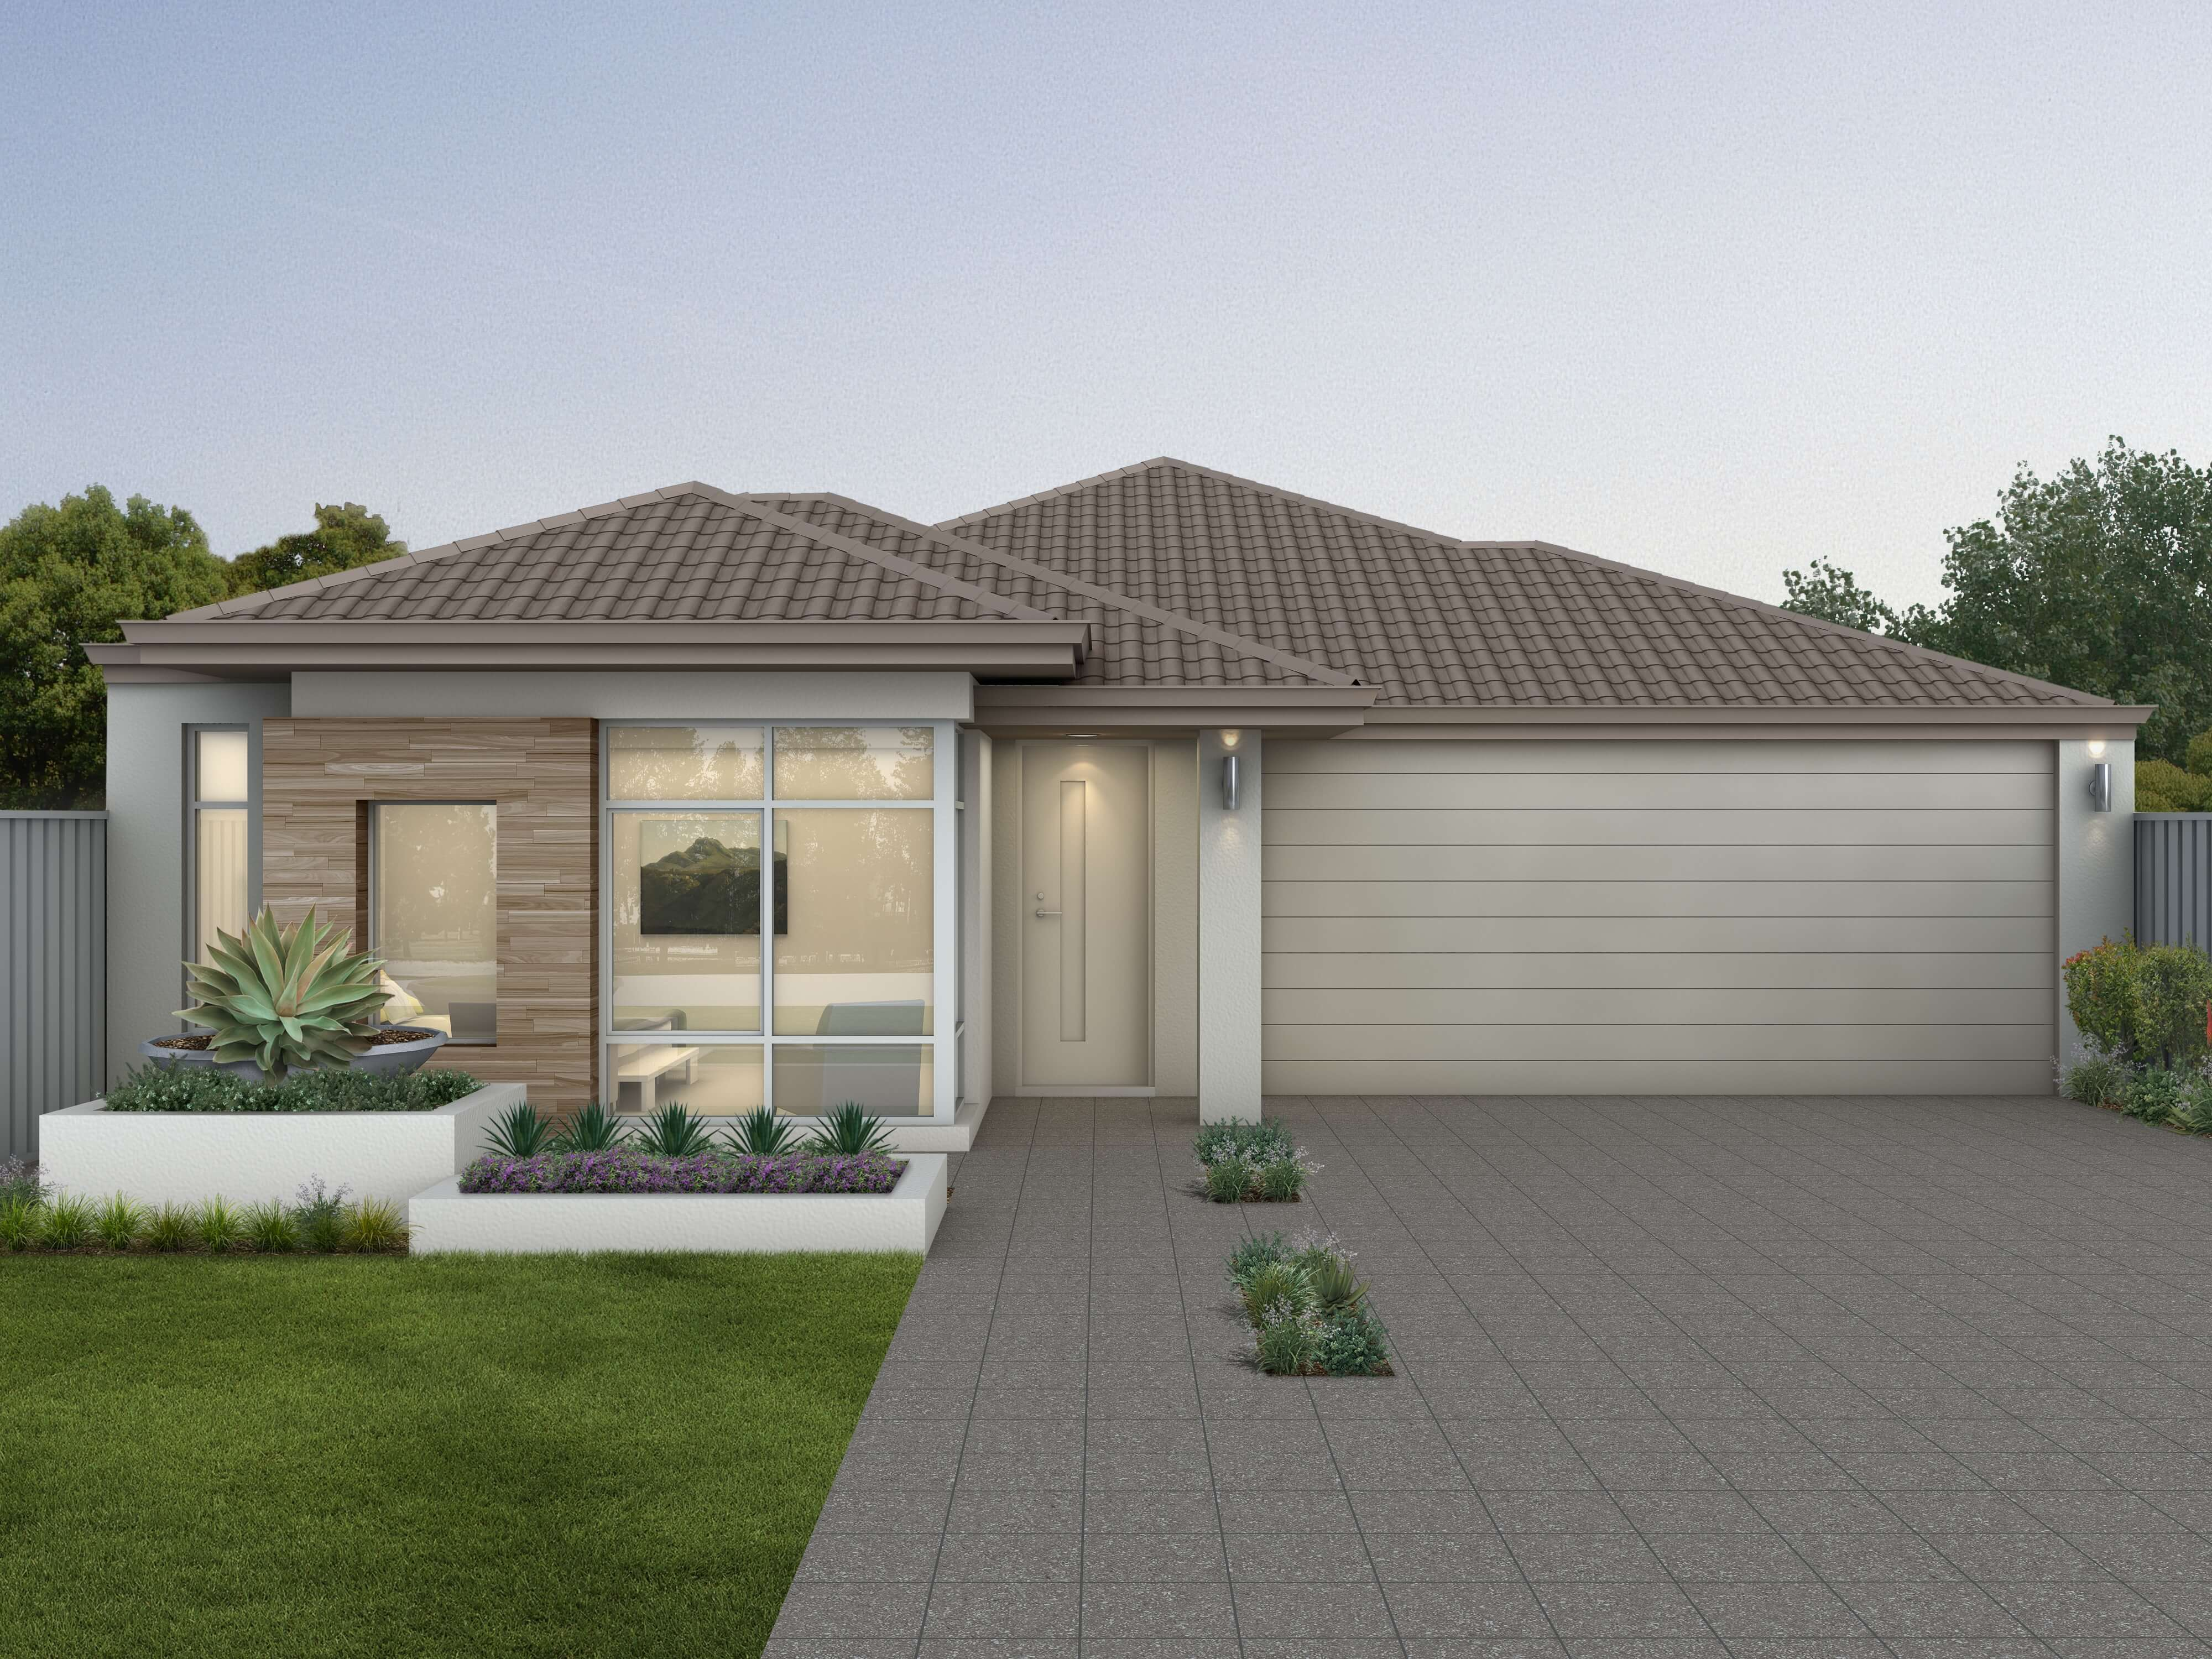 The Torres, a new home design by Move Homes for Perth families and first time home buyers